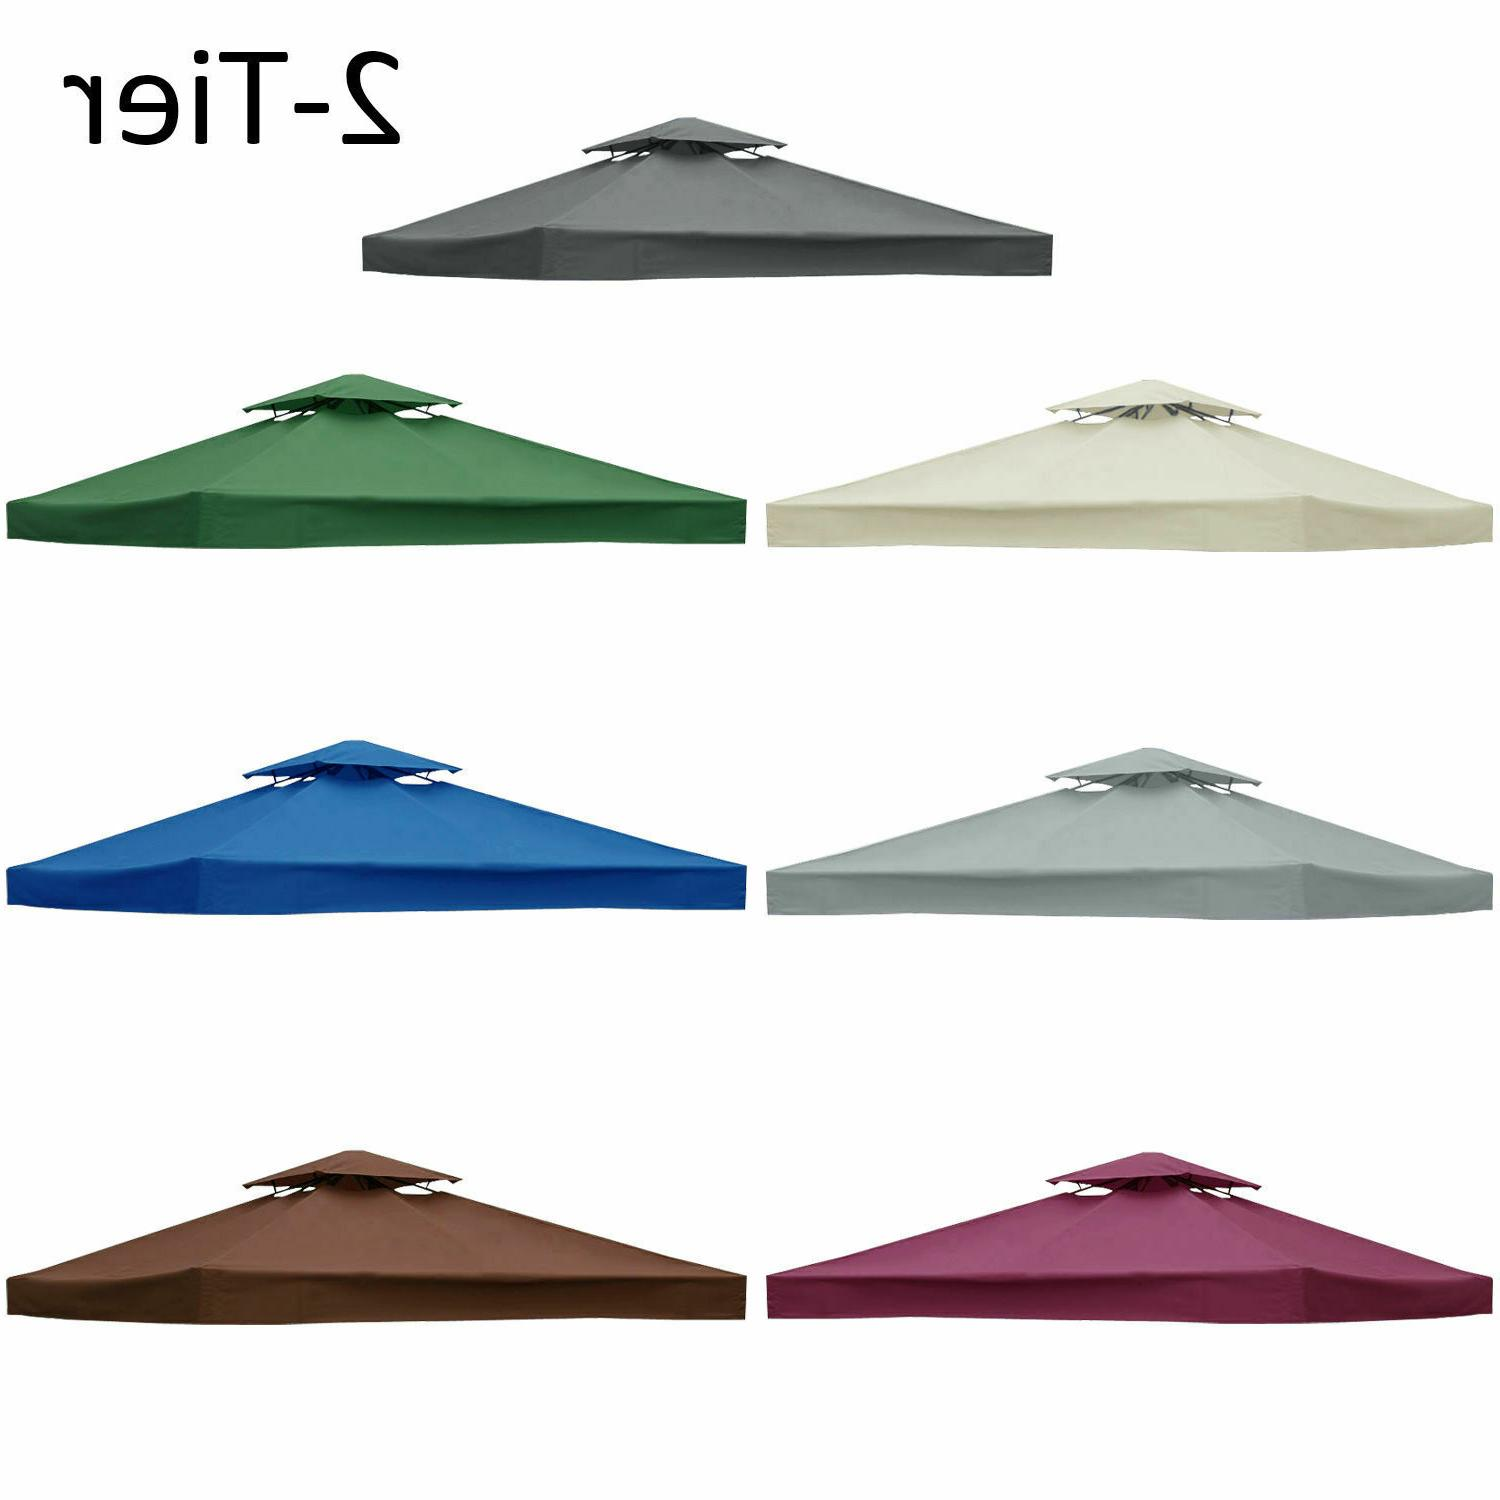 2-Tier 10'x10' Replacement Canopy Tent Garden Outdoor Sunshade Cover